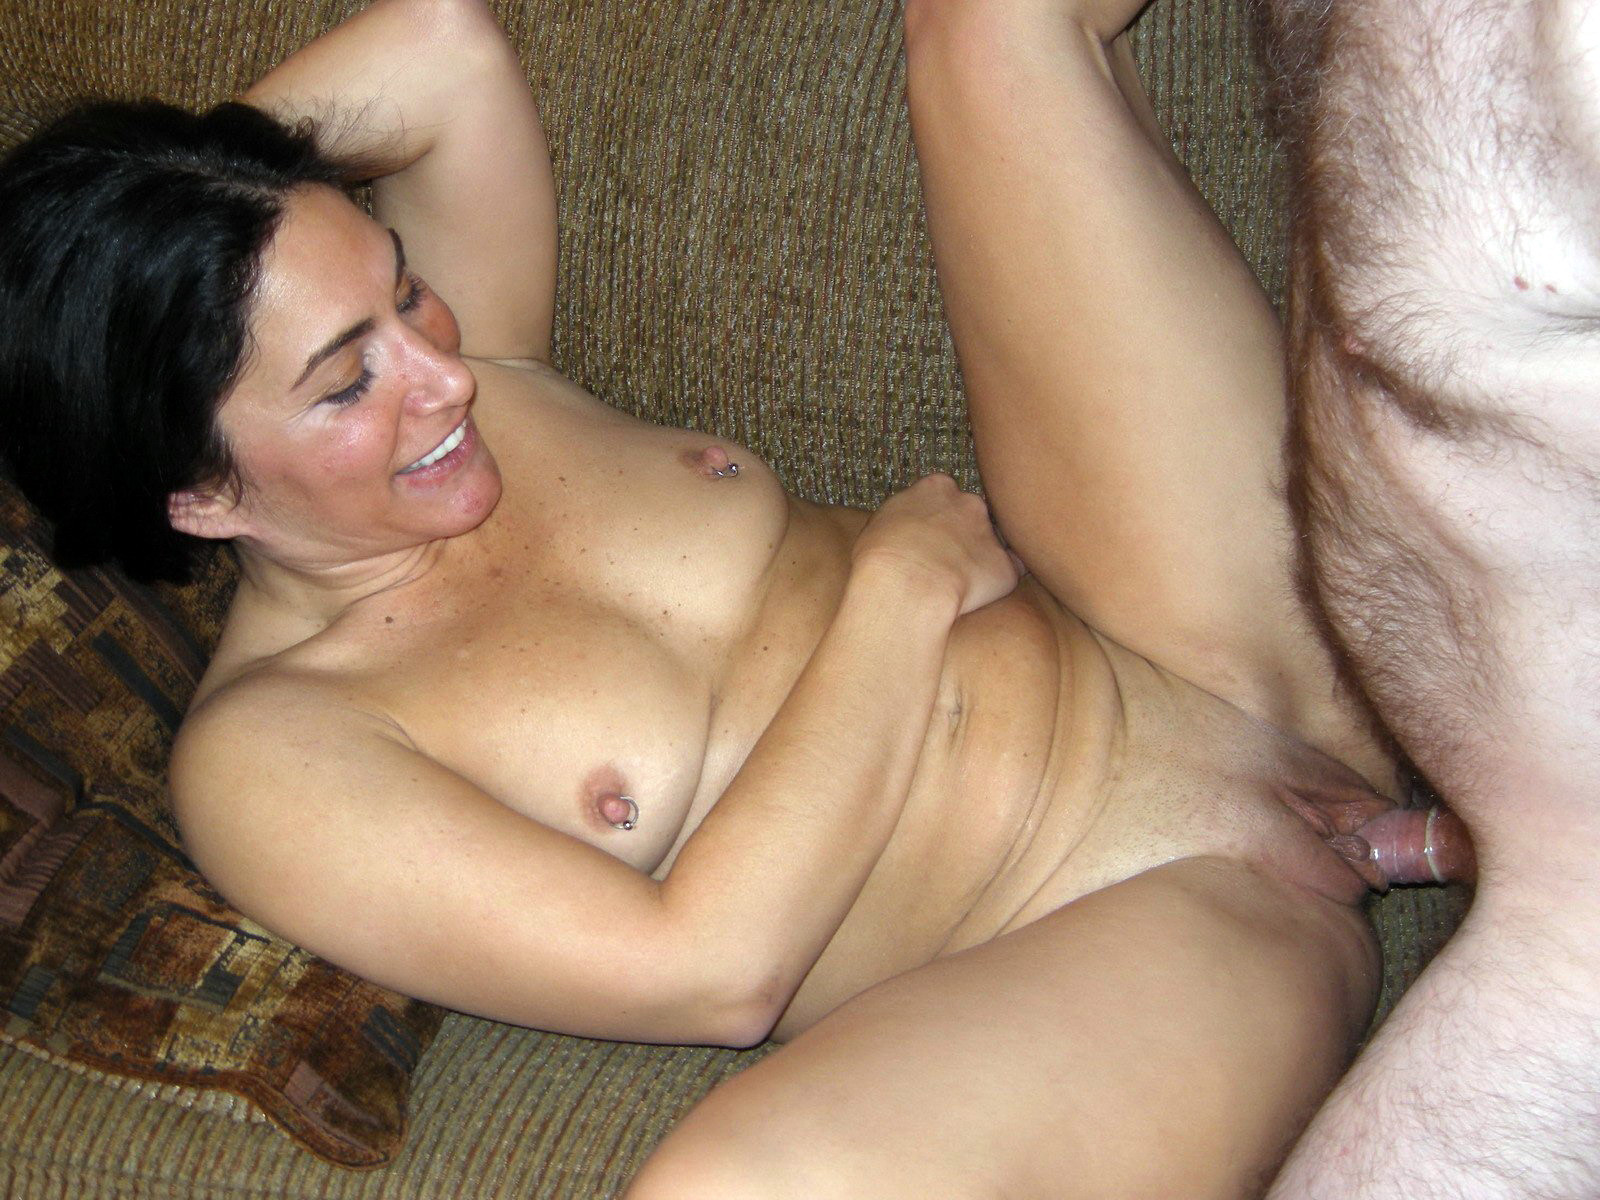 amateur-sex-mom-james-uk-old-guys-young-girls